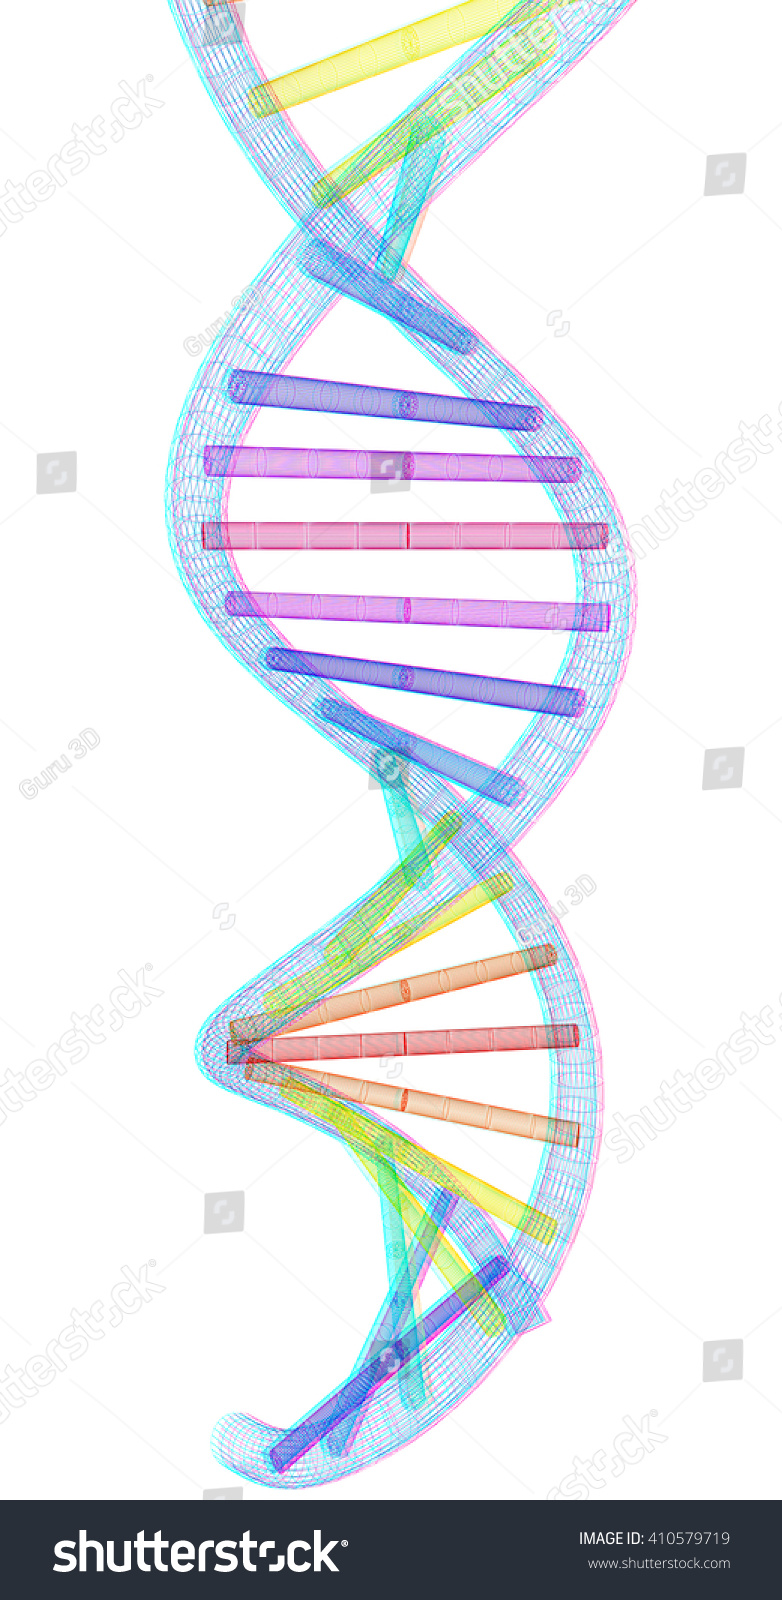 Dna structure model 3d illustration anaglyph stock illustration dna structure model 3d illustration anaglyph view with redcyan glasses to ccuart Gallery